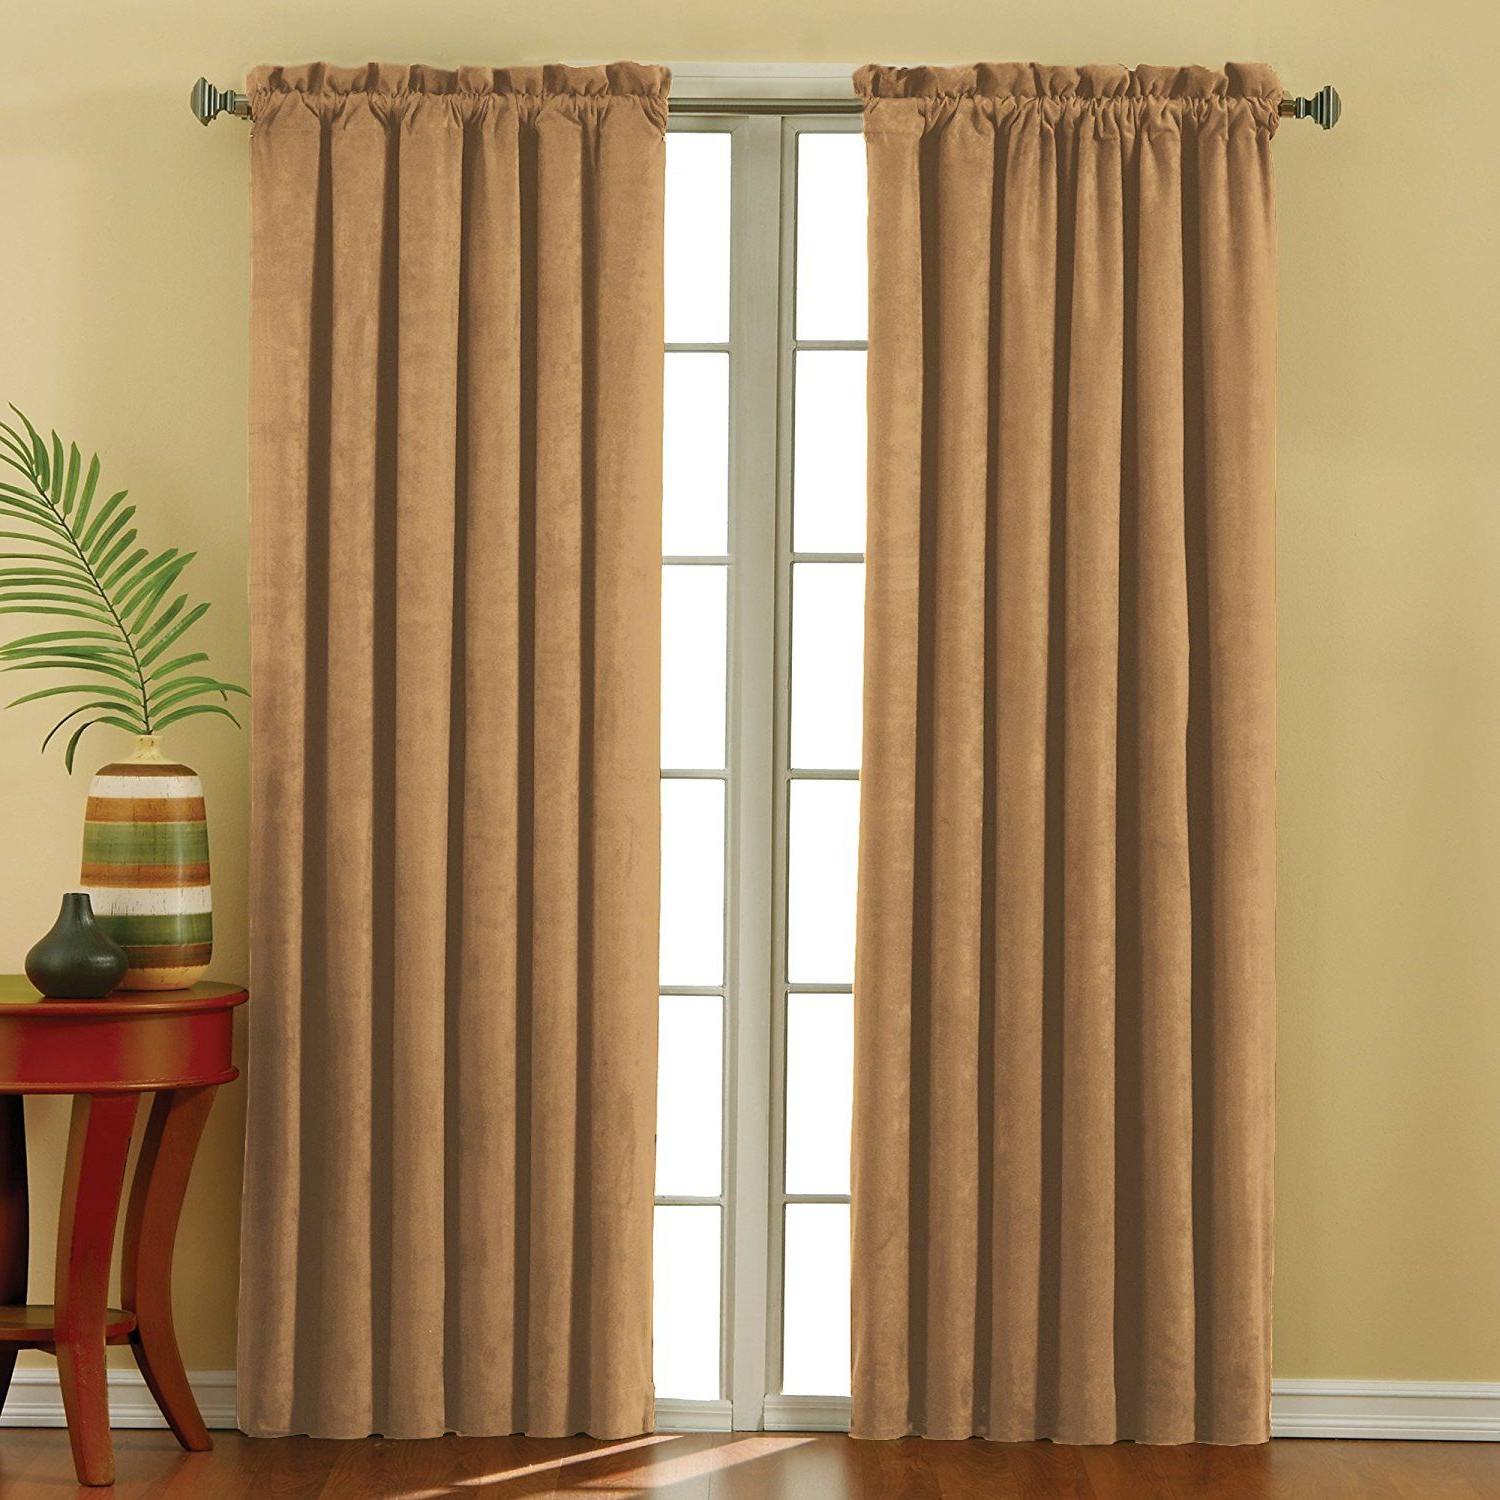 Well Known Eclipse Corinne Thermaback Curtain Panels In Eclipse 10301042x063go Suede 42 Inch63 Inch Thermaback (View 18 of 20)